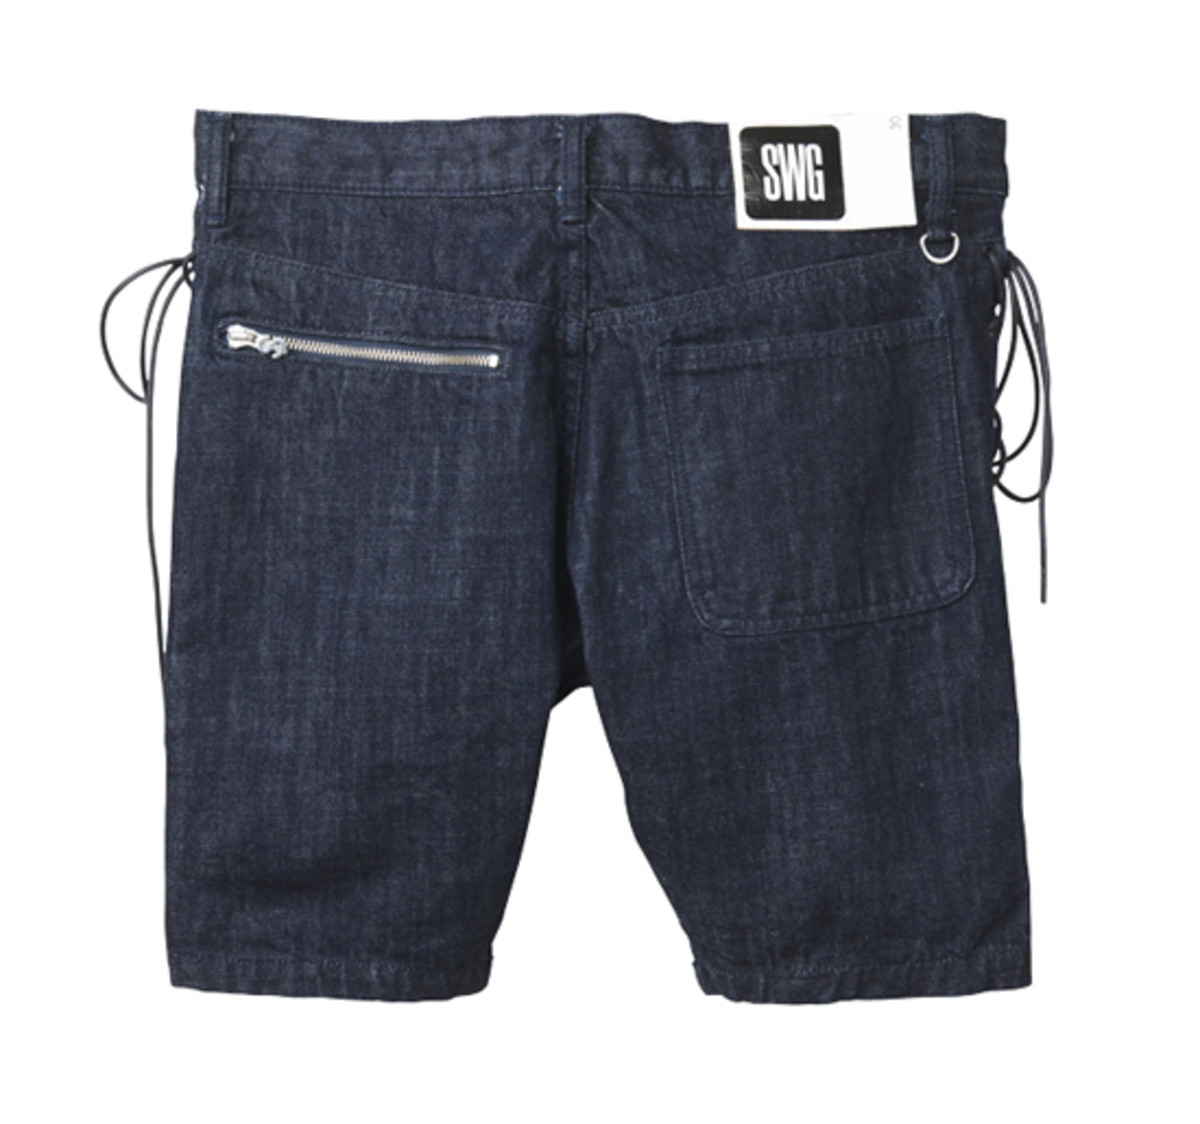 M.E.T.A.L. Denim Shorts Indigo 2